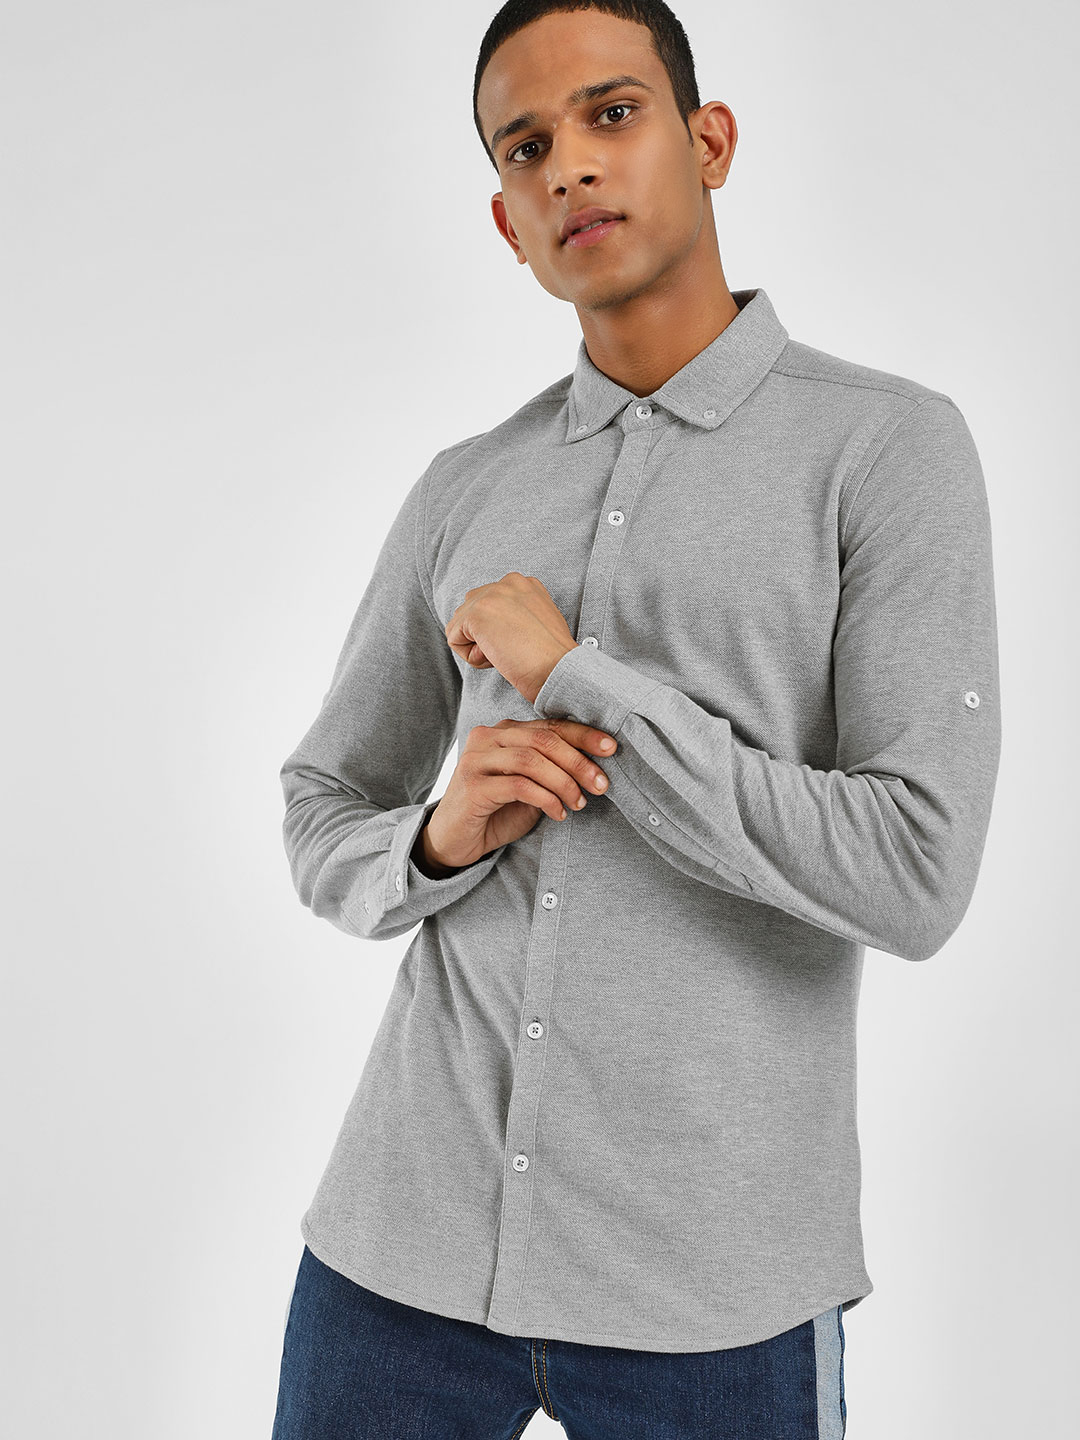 PostFold Grey Casual Pique Knitted Shirt 1